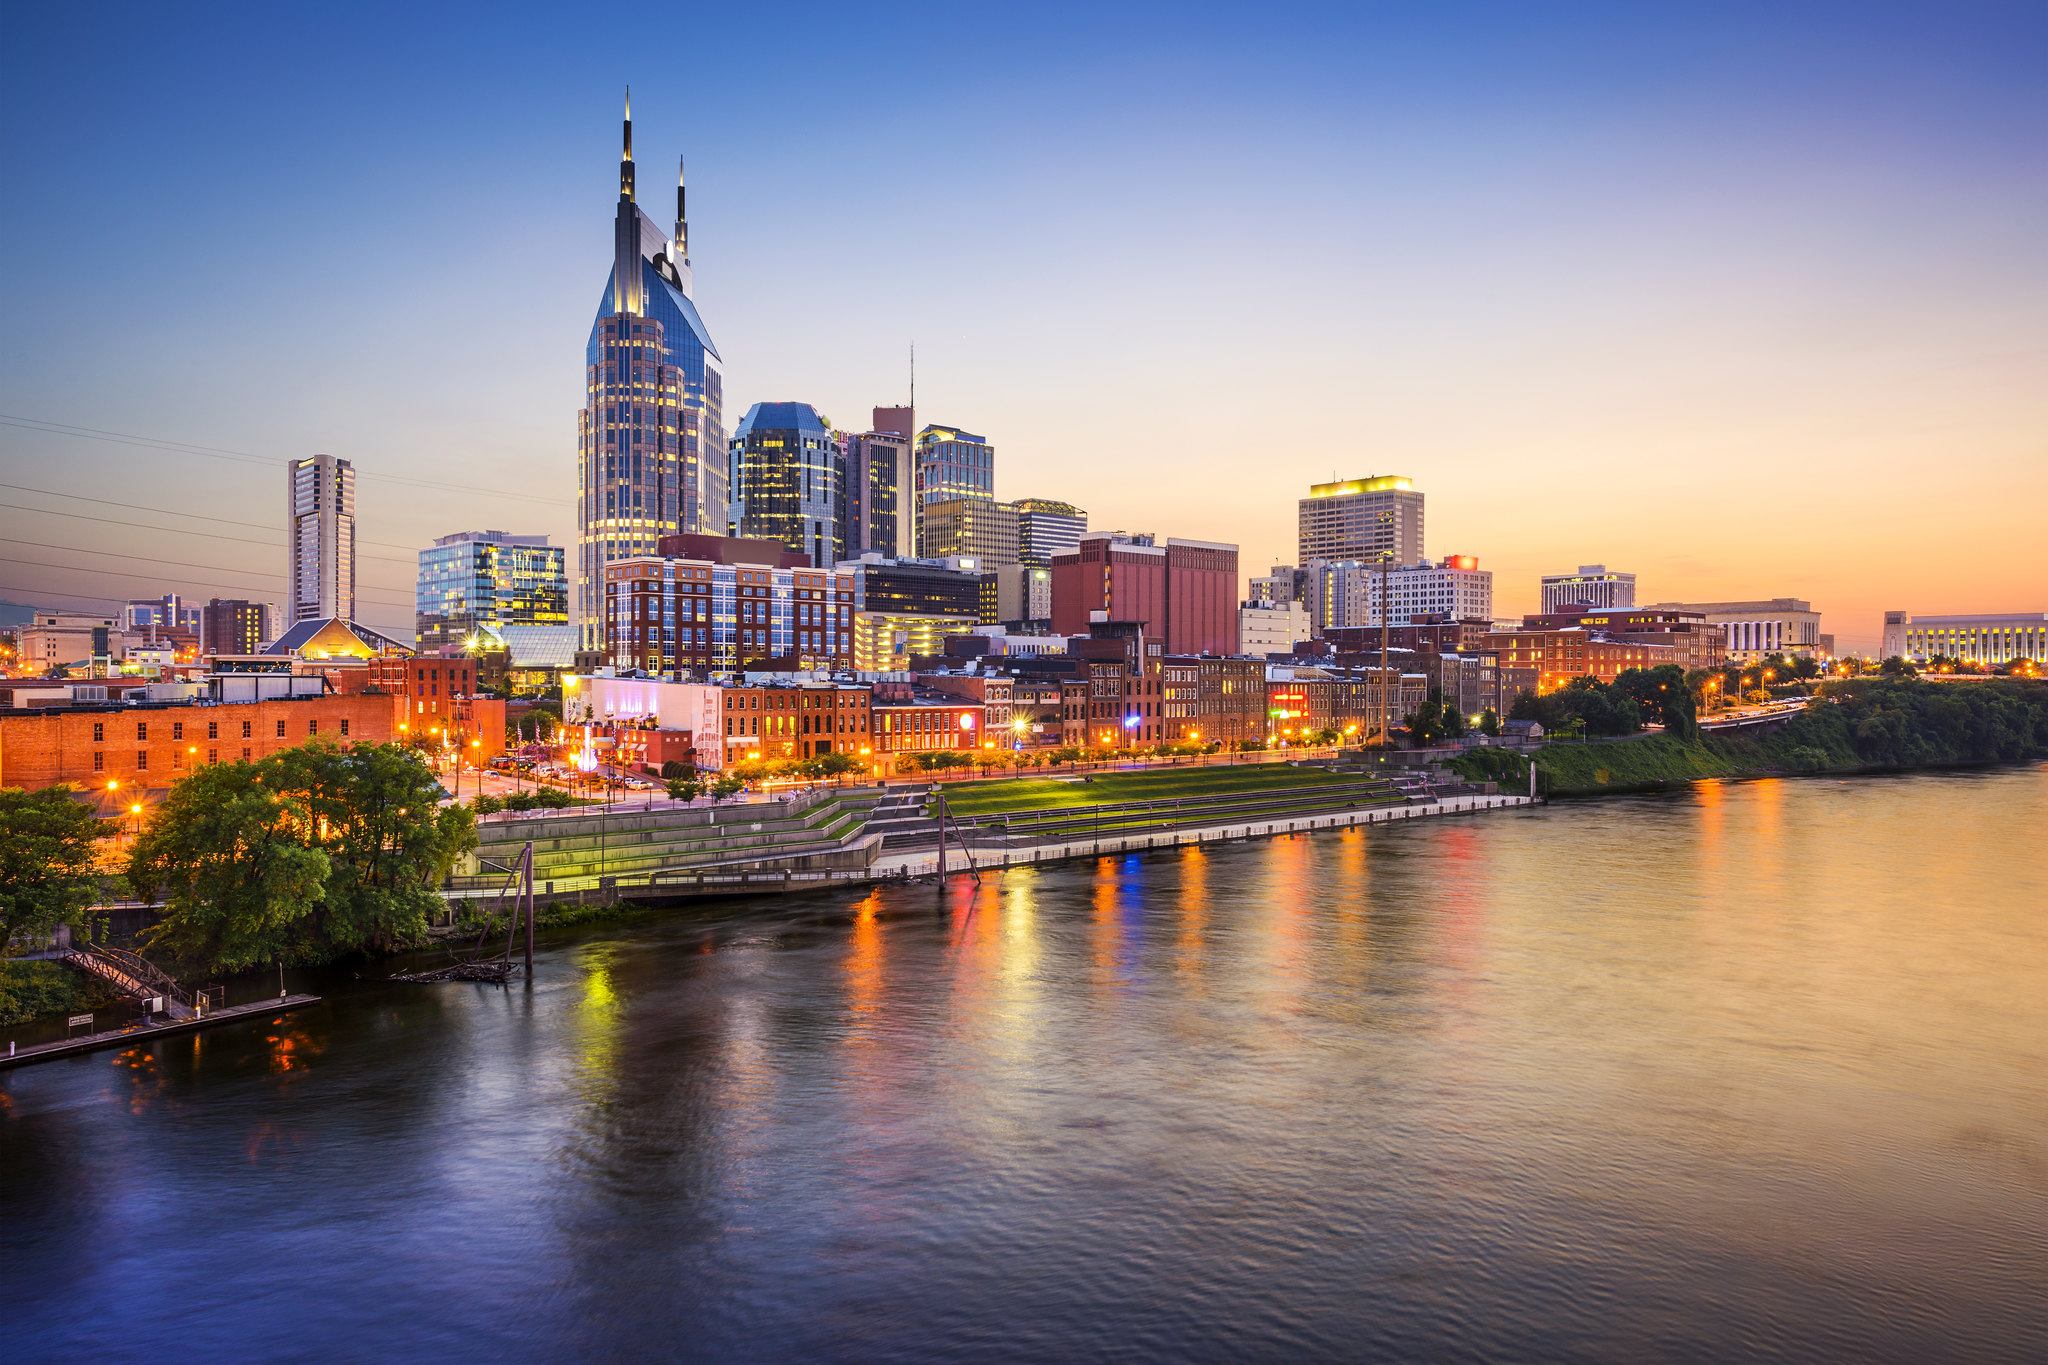 Nashville, Tennessee, USA downtown skyline on the Cumberland River - photo by Derrick Brutel under CC BY-SA 2.0